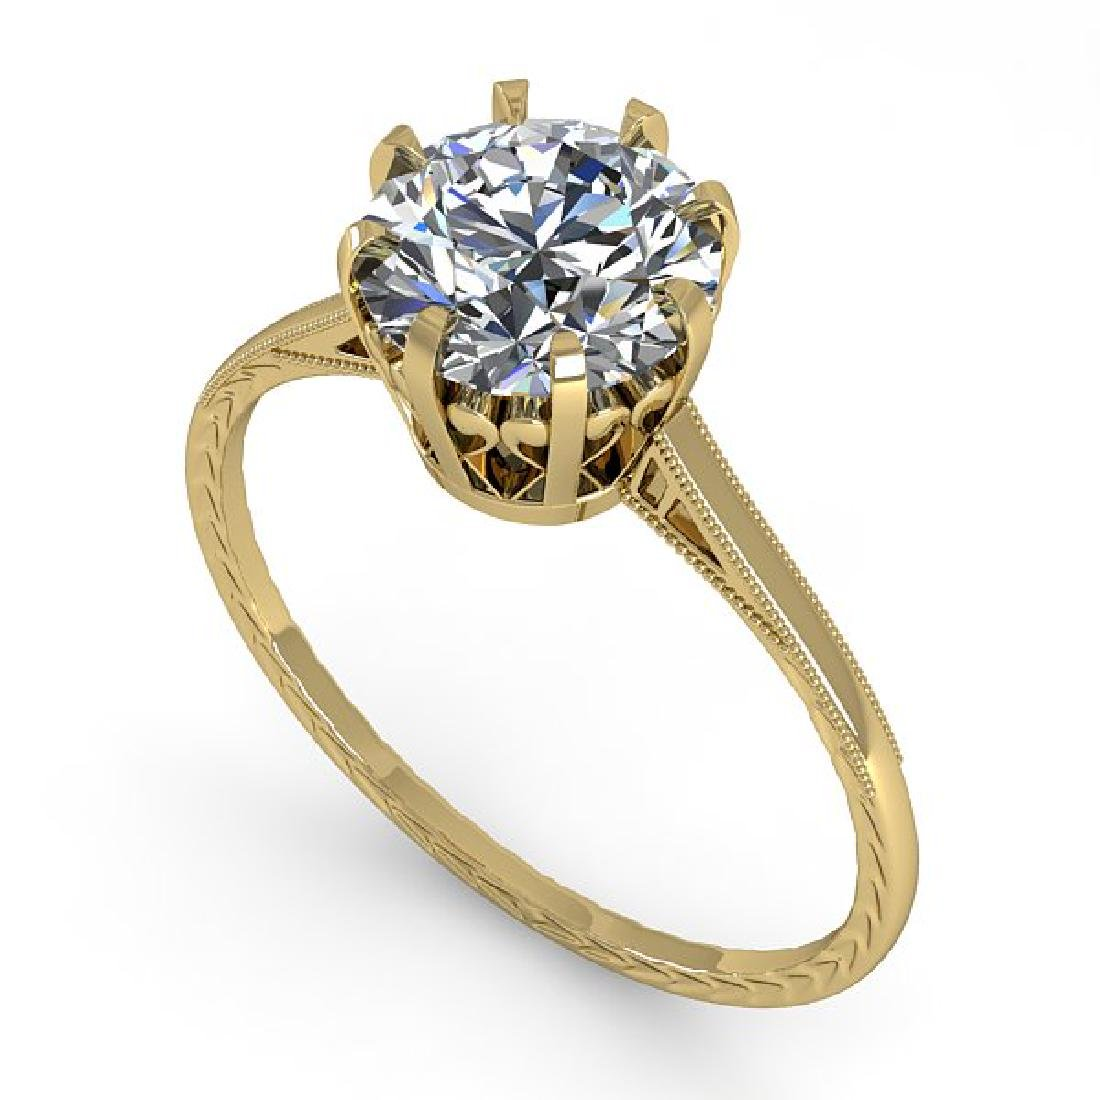 1.50 CTW Certified VS/SI Diamond Ring 14K Yellow Gold - 2